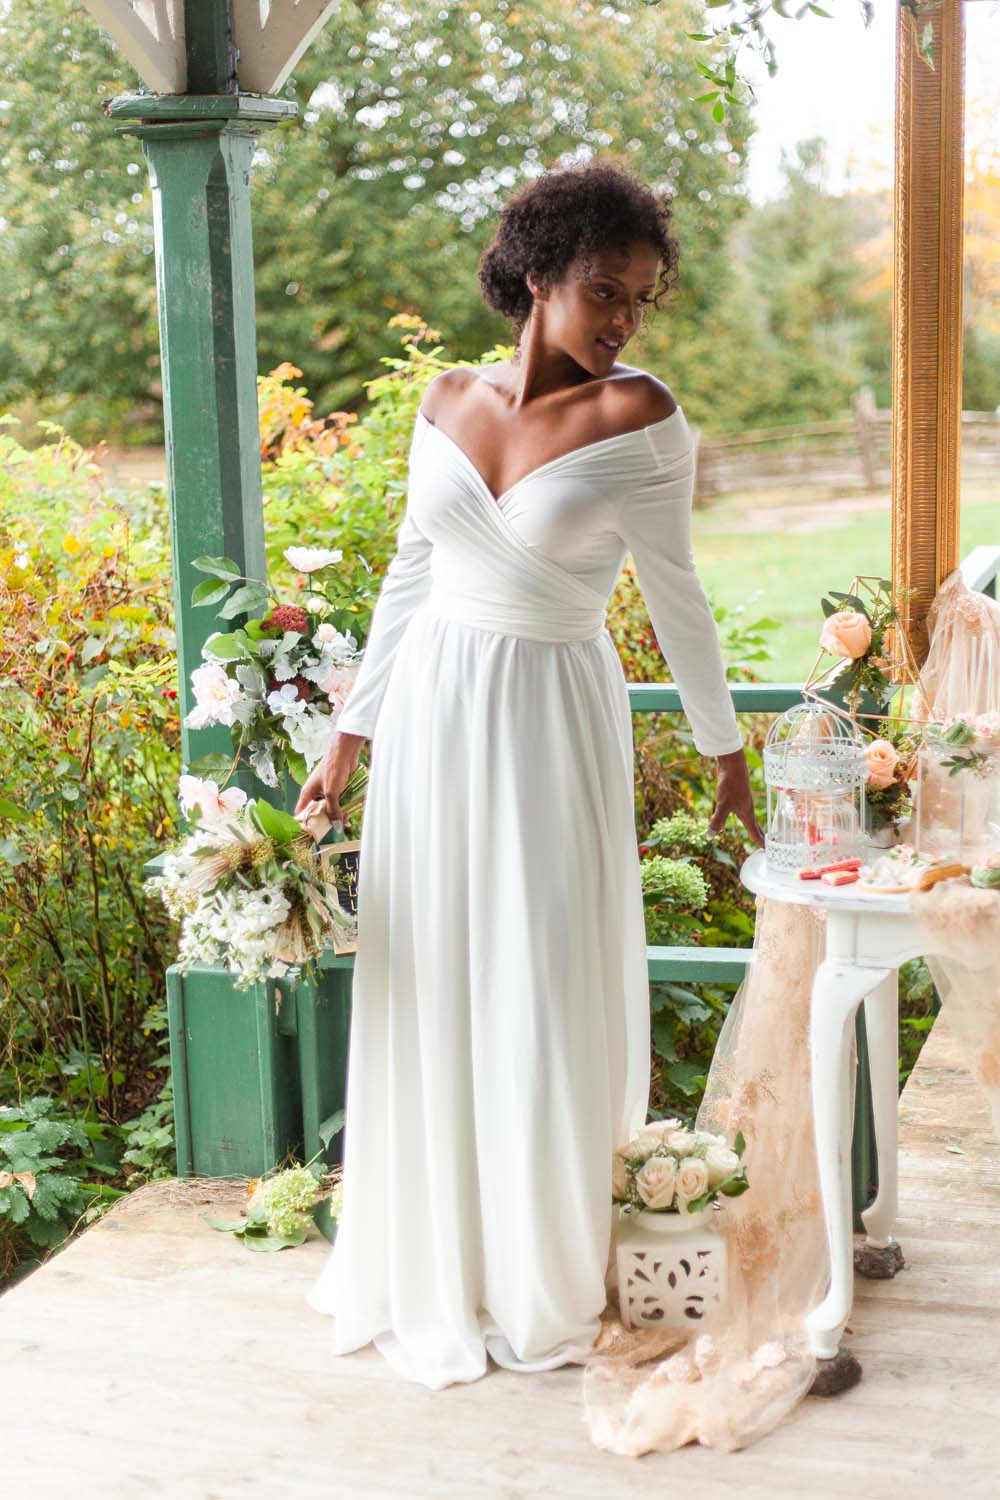 Henkaa Spring/Summer 2019 Bridesmaid Dresses - Looking at the Table